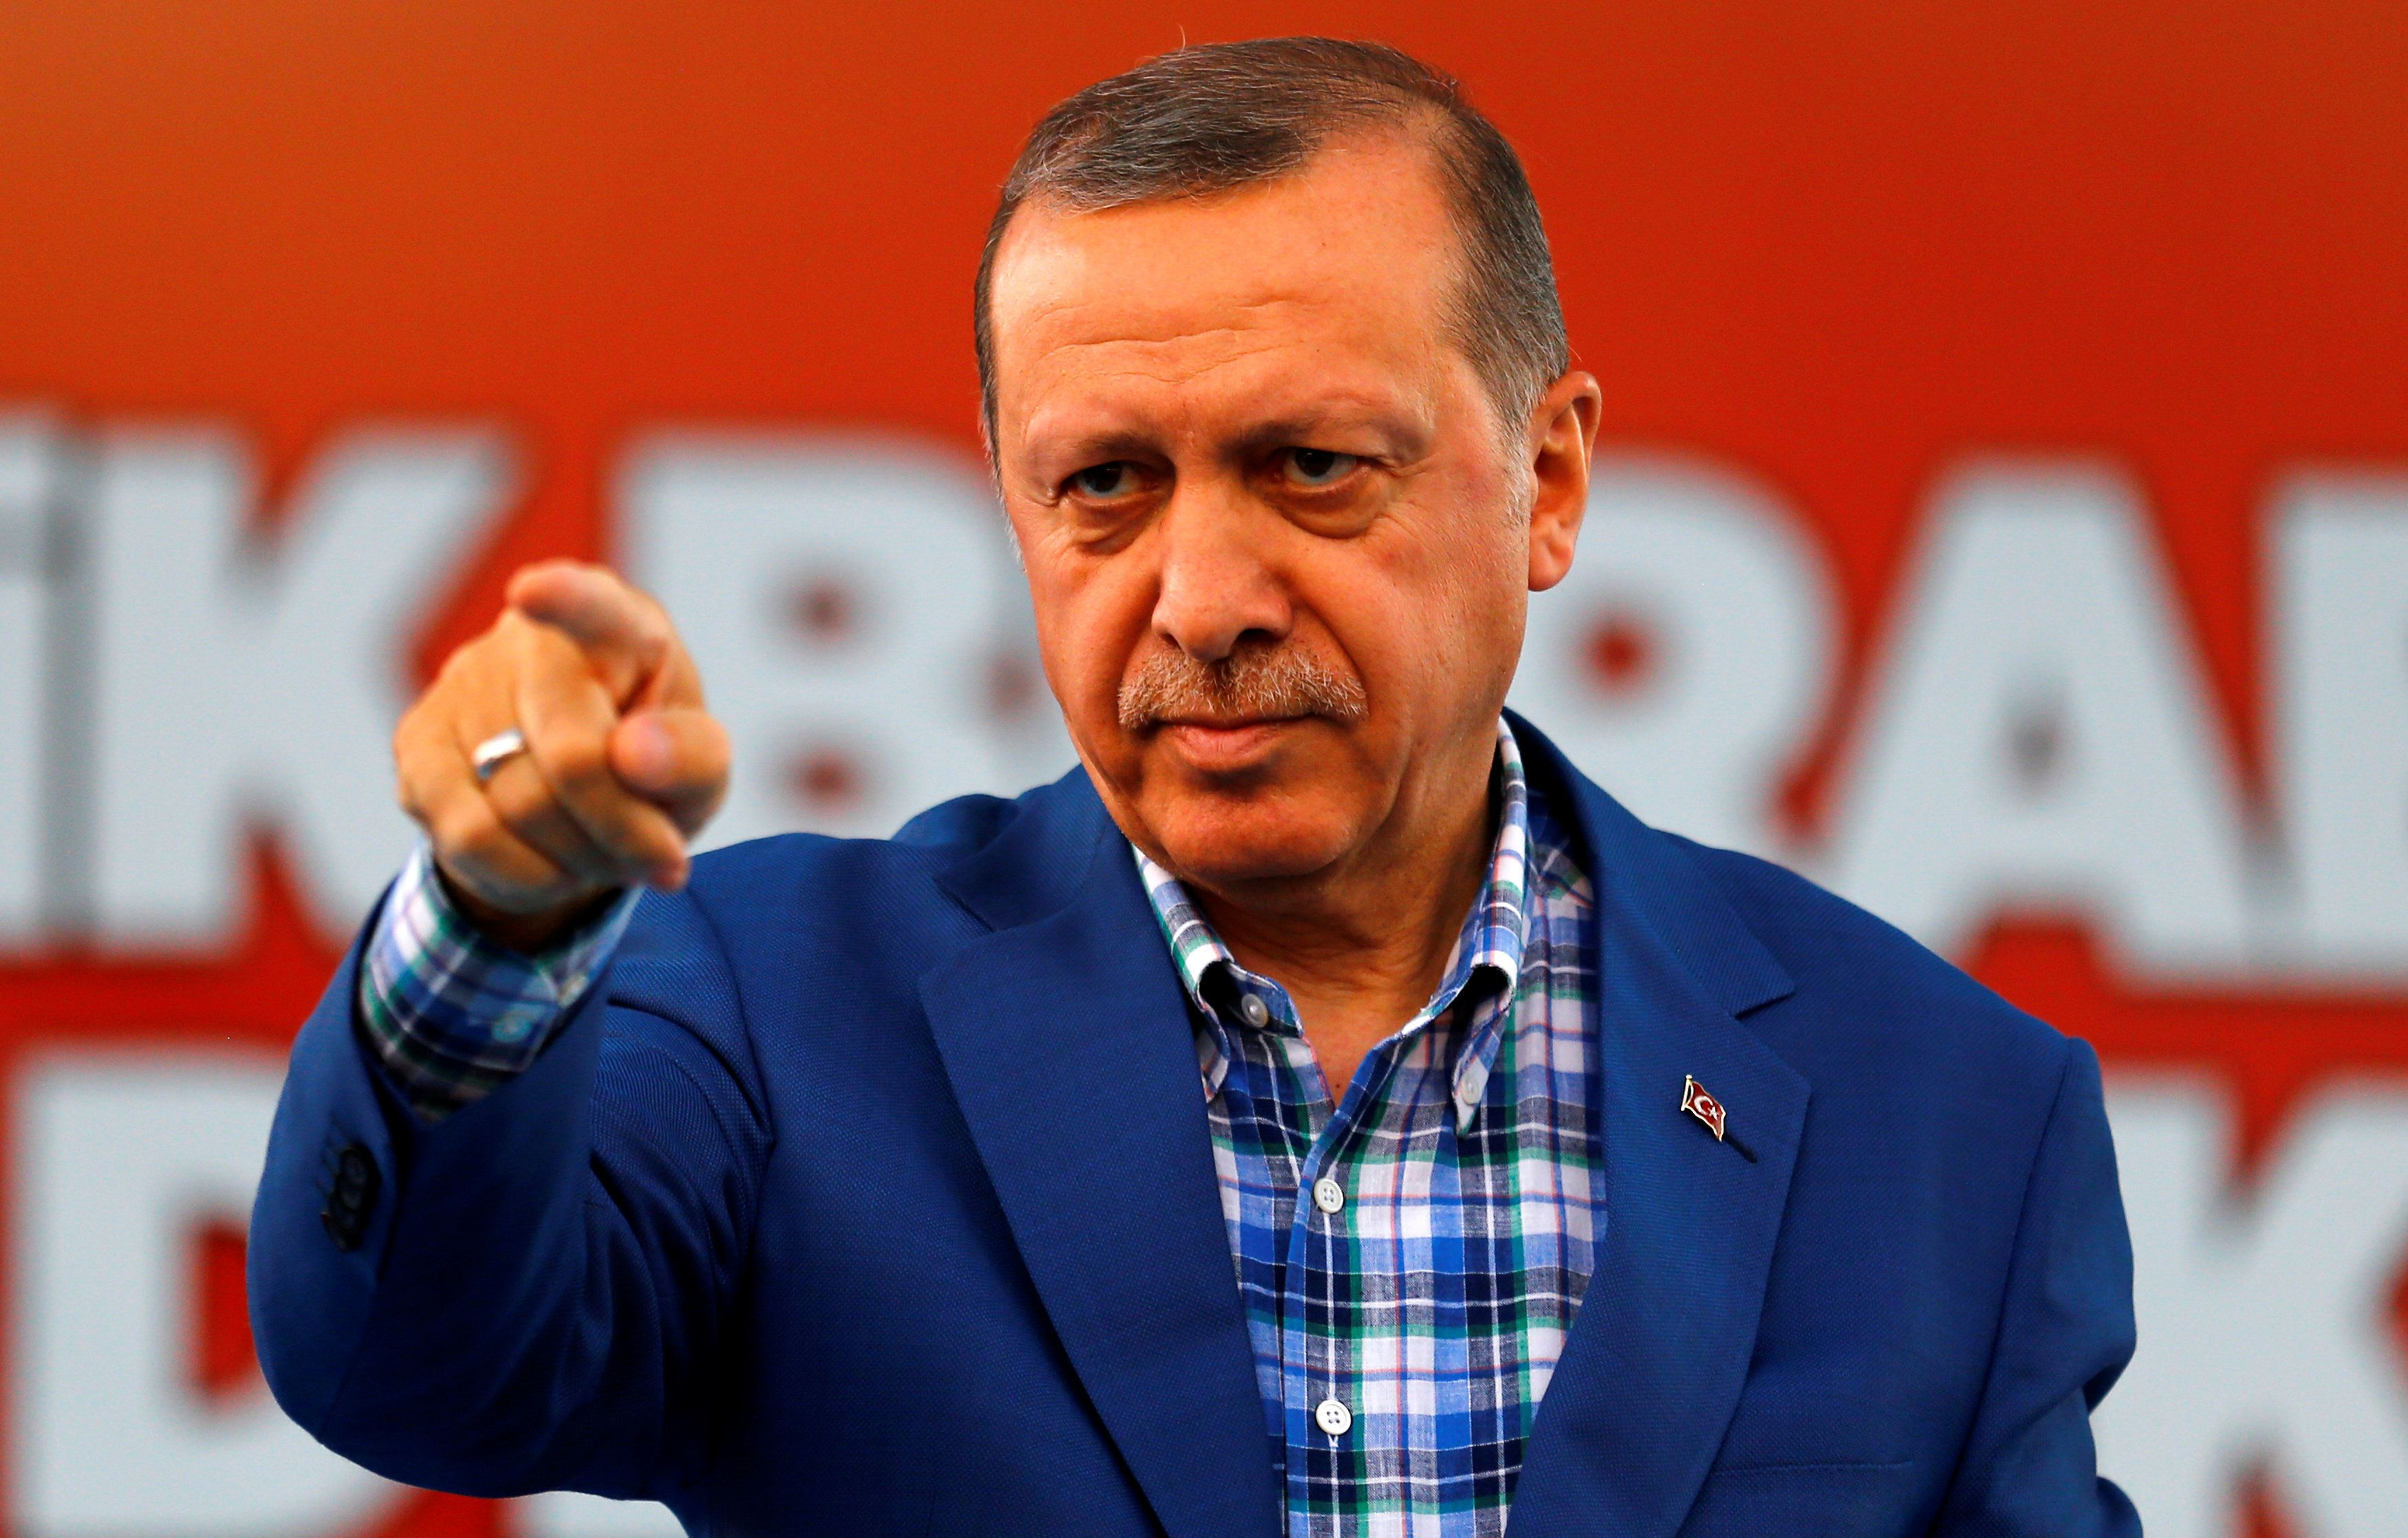 Turkey's President Tayyip Erdogan points at the United Solidarity and Brotherhood rally in Gaziantep, Turkey, August 28, 2016